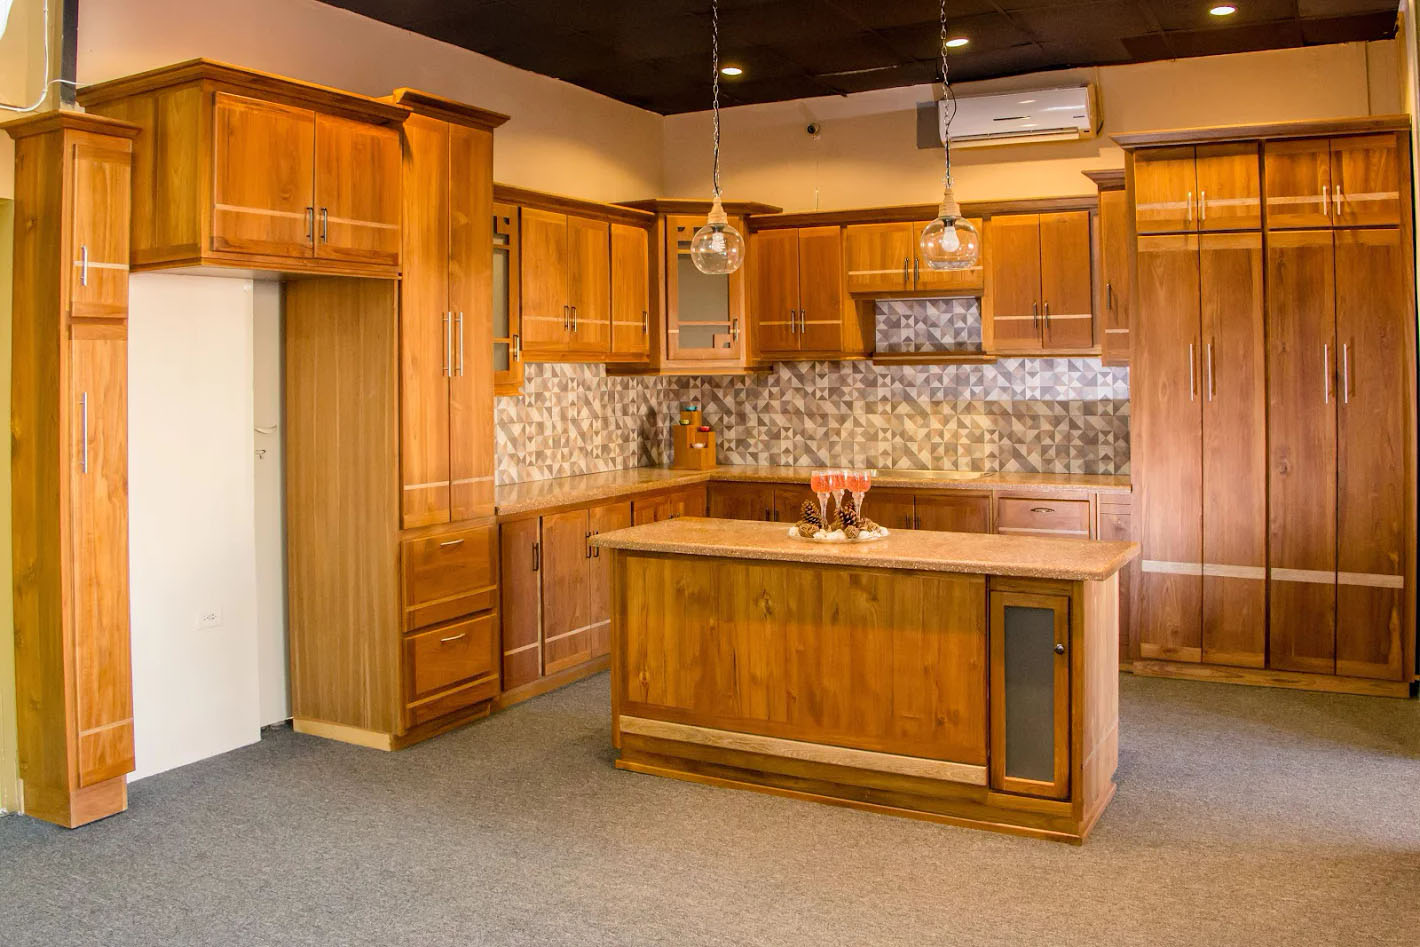 Kitchen Cabinets Solid Wood Construction Veneer And Solid Wood Teak Kitchen Cabinetry